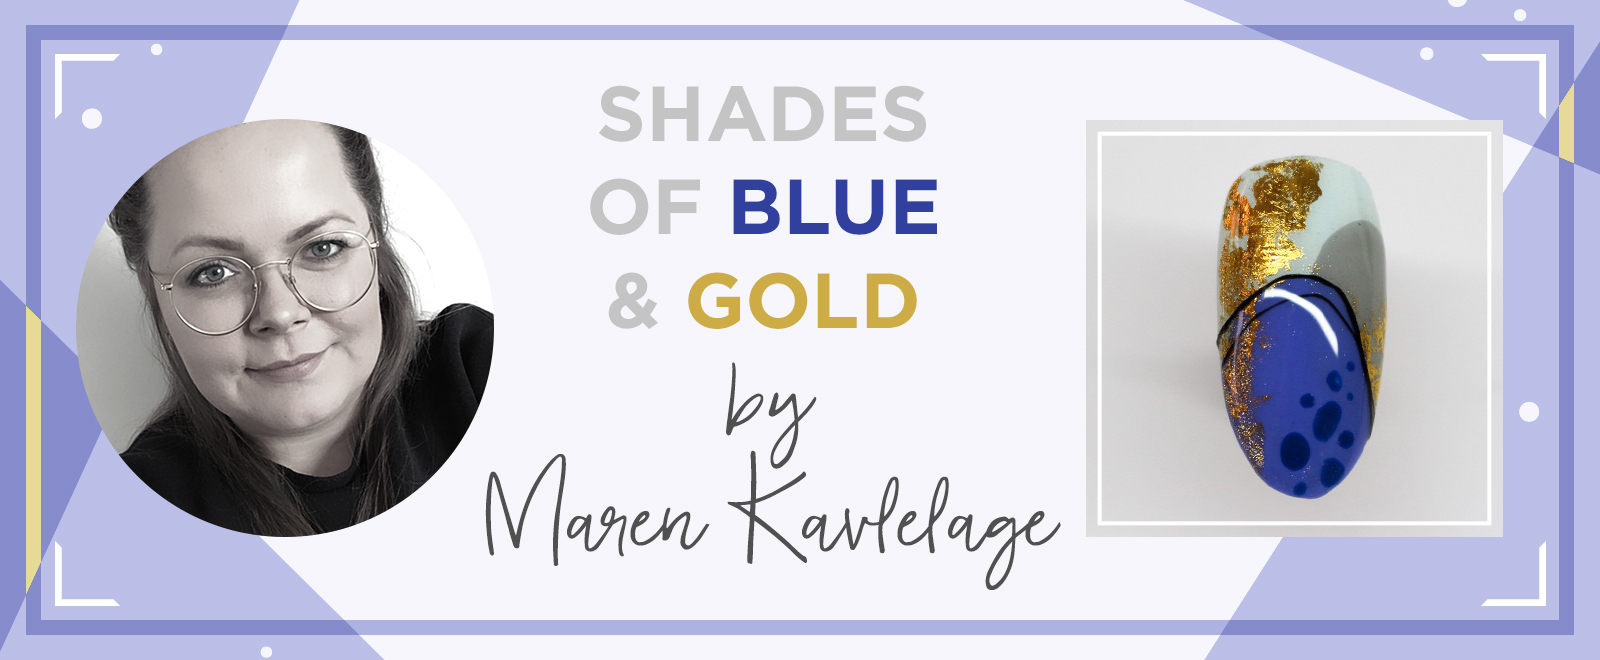 SBS_header_template_1600x660_shades-of-blue-gold_Maren-Kavlelage